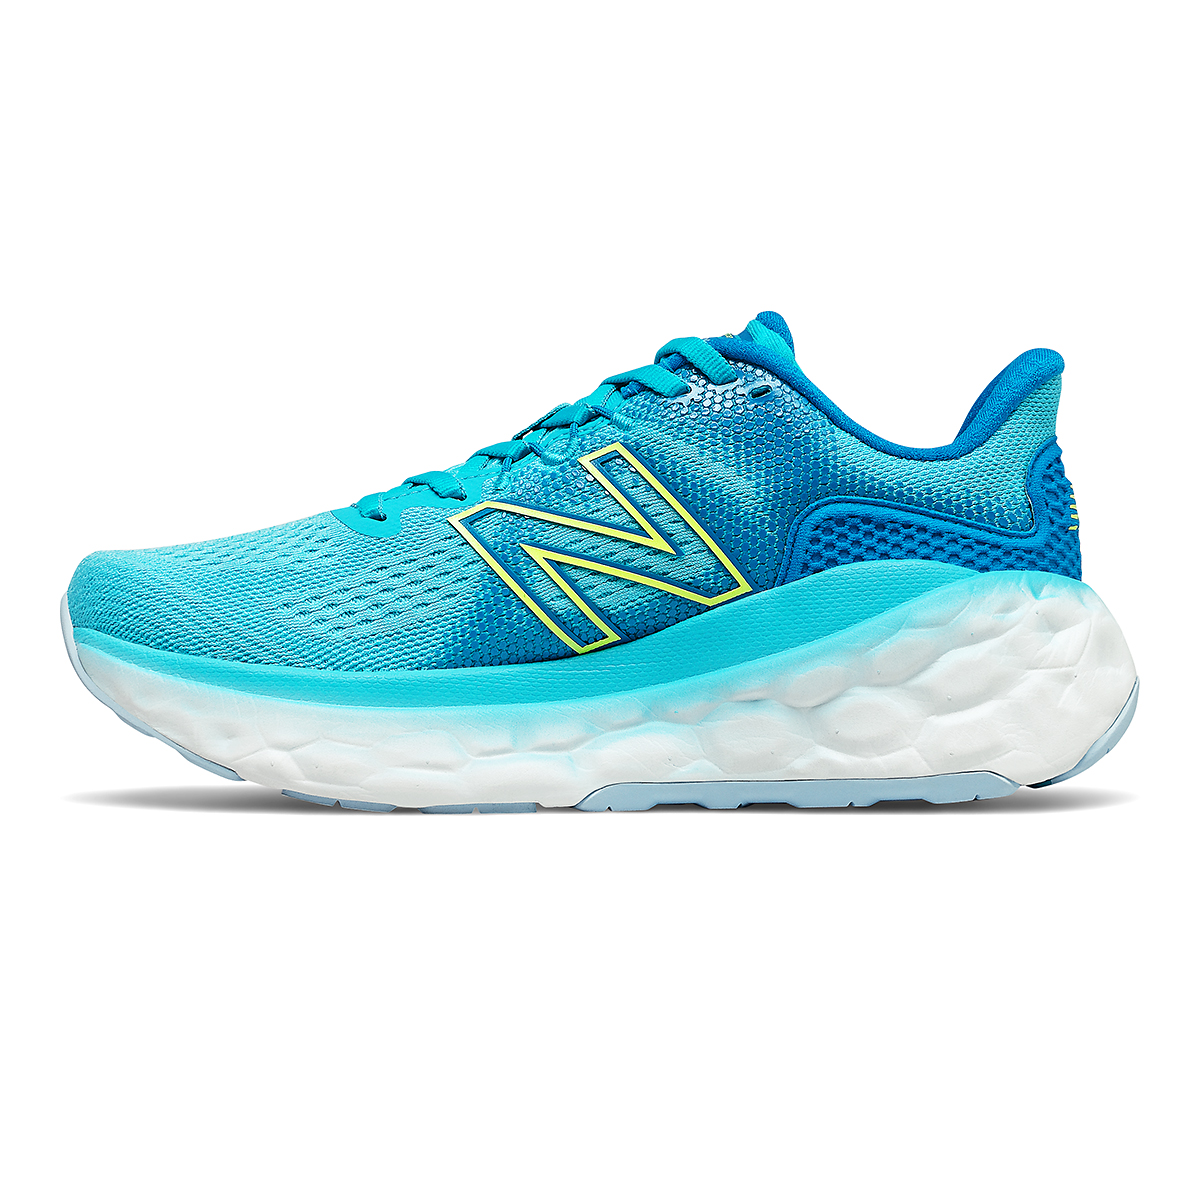 Women's New Balance Fresh Foam More V3 Running Shoe - Color: Virtual Sky/Bleached Lime Glo - Size: 5 - Width: Extra Wide, Virtual Sky/Bleached Lime Glo, large, image 2